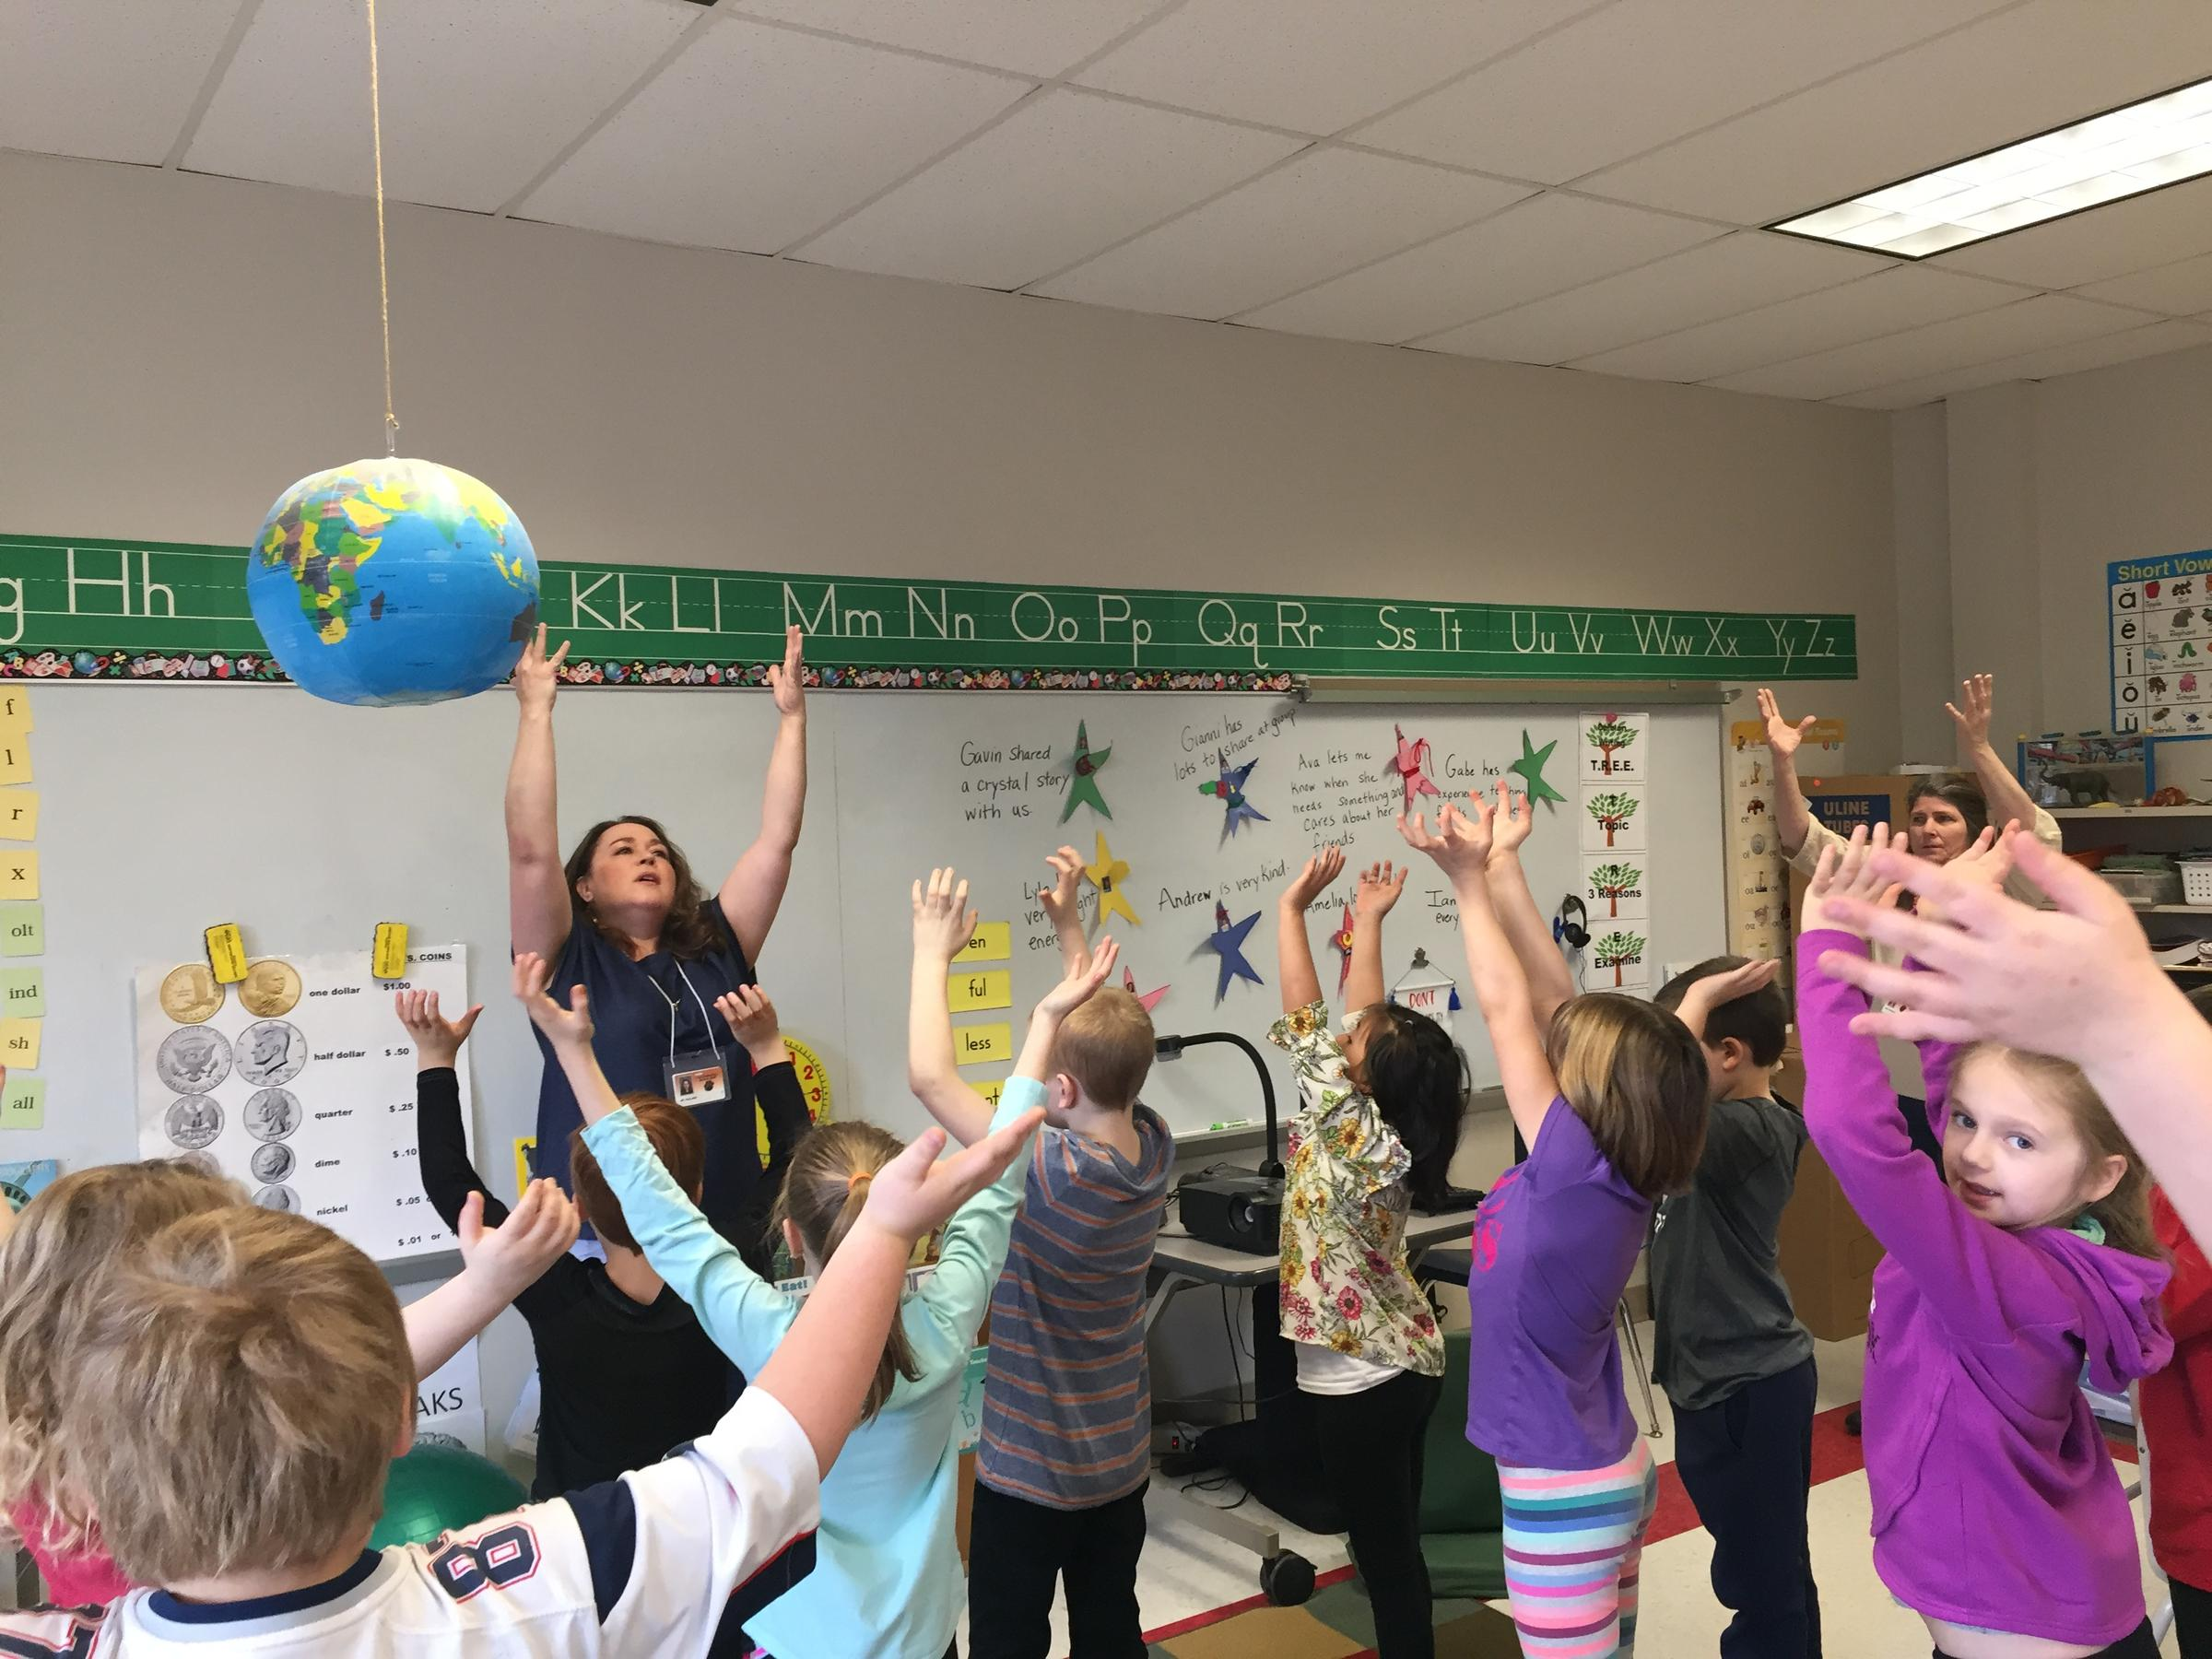 Teacher Jessica Pollard at Lee Elementary School leads her class in a mindfulness exercise. Photo by Karen Brown for NEPR